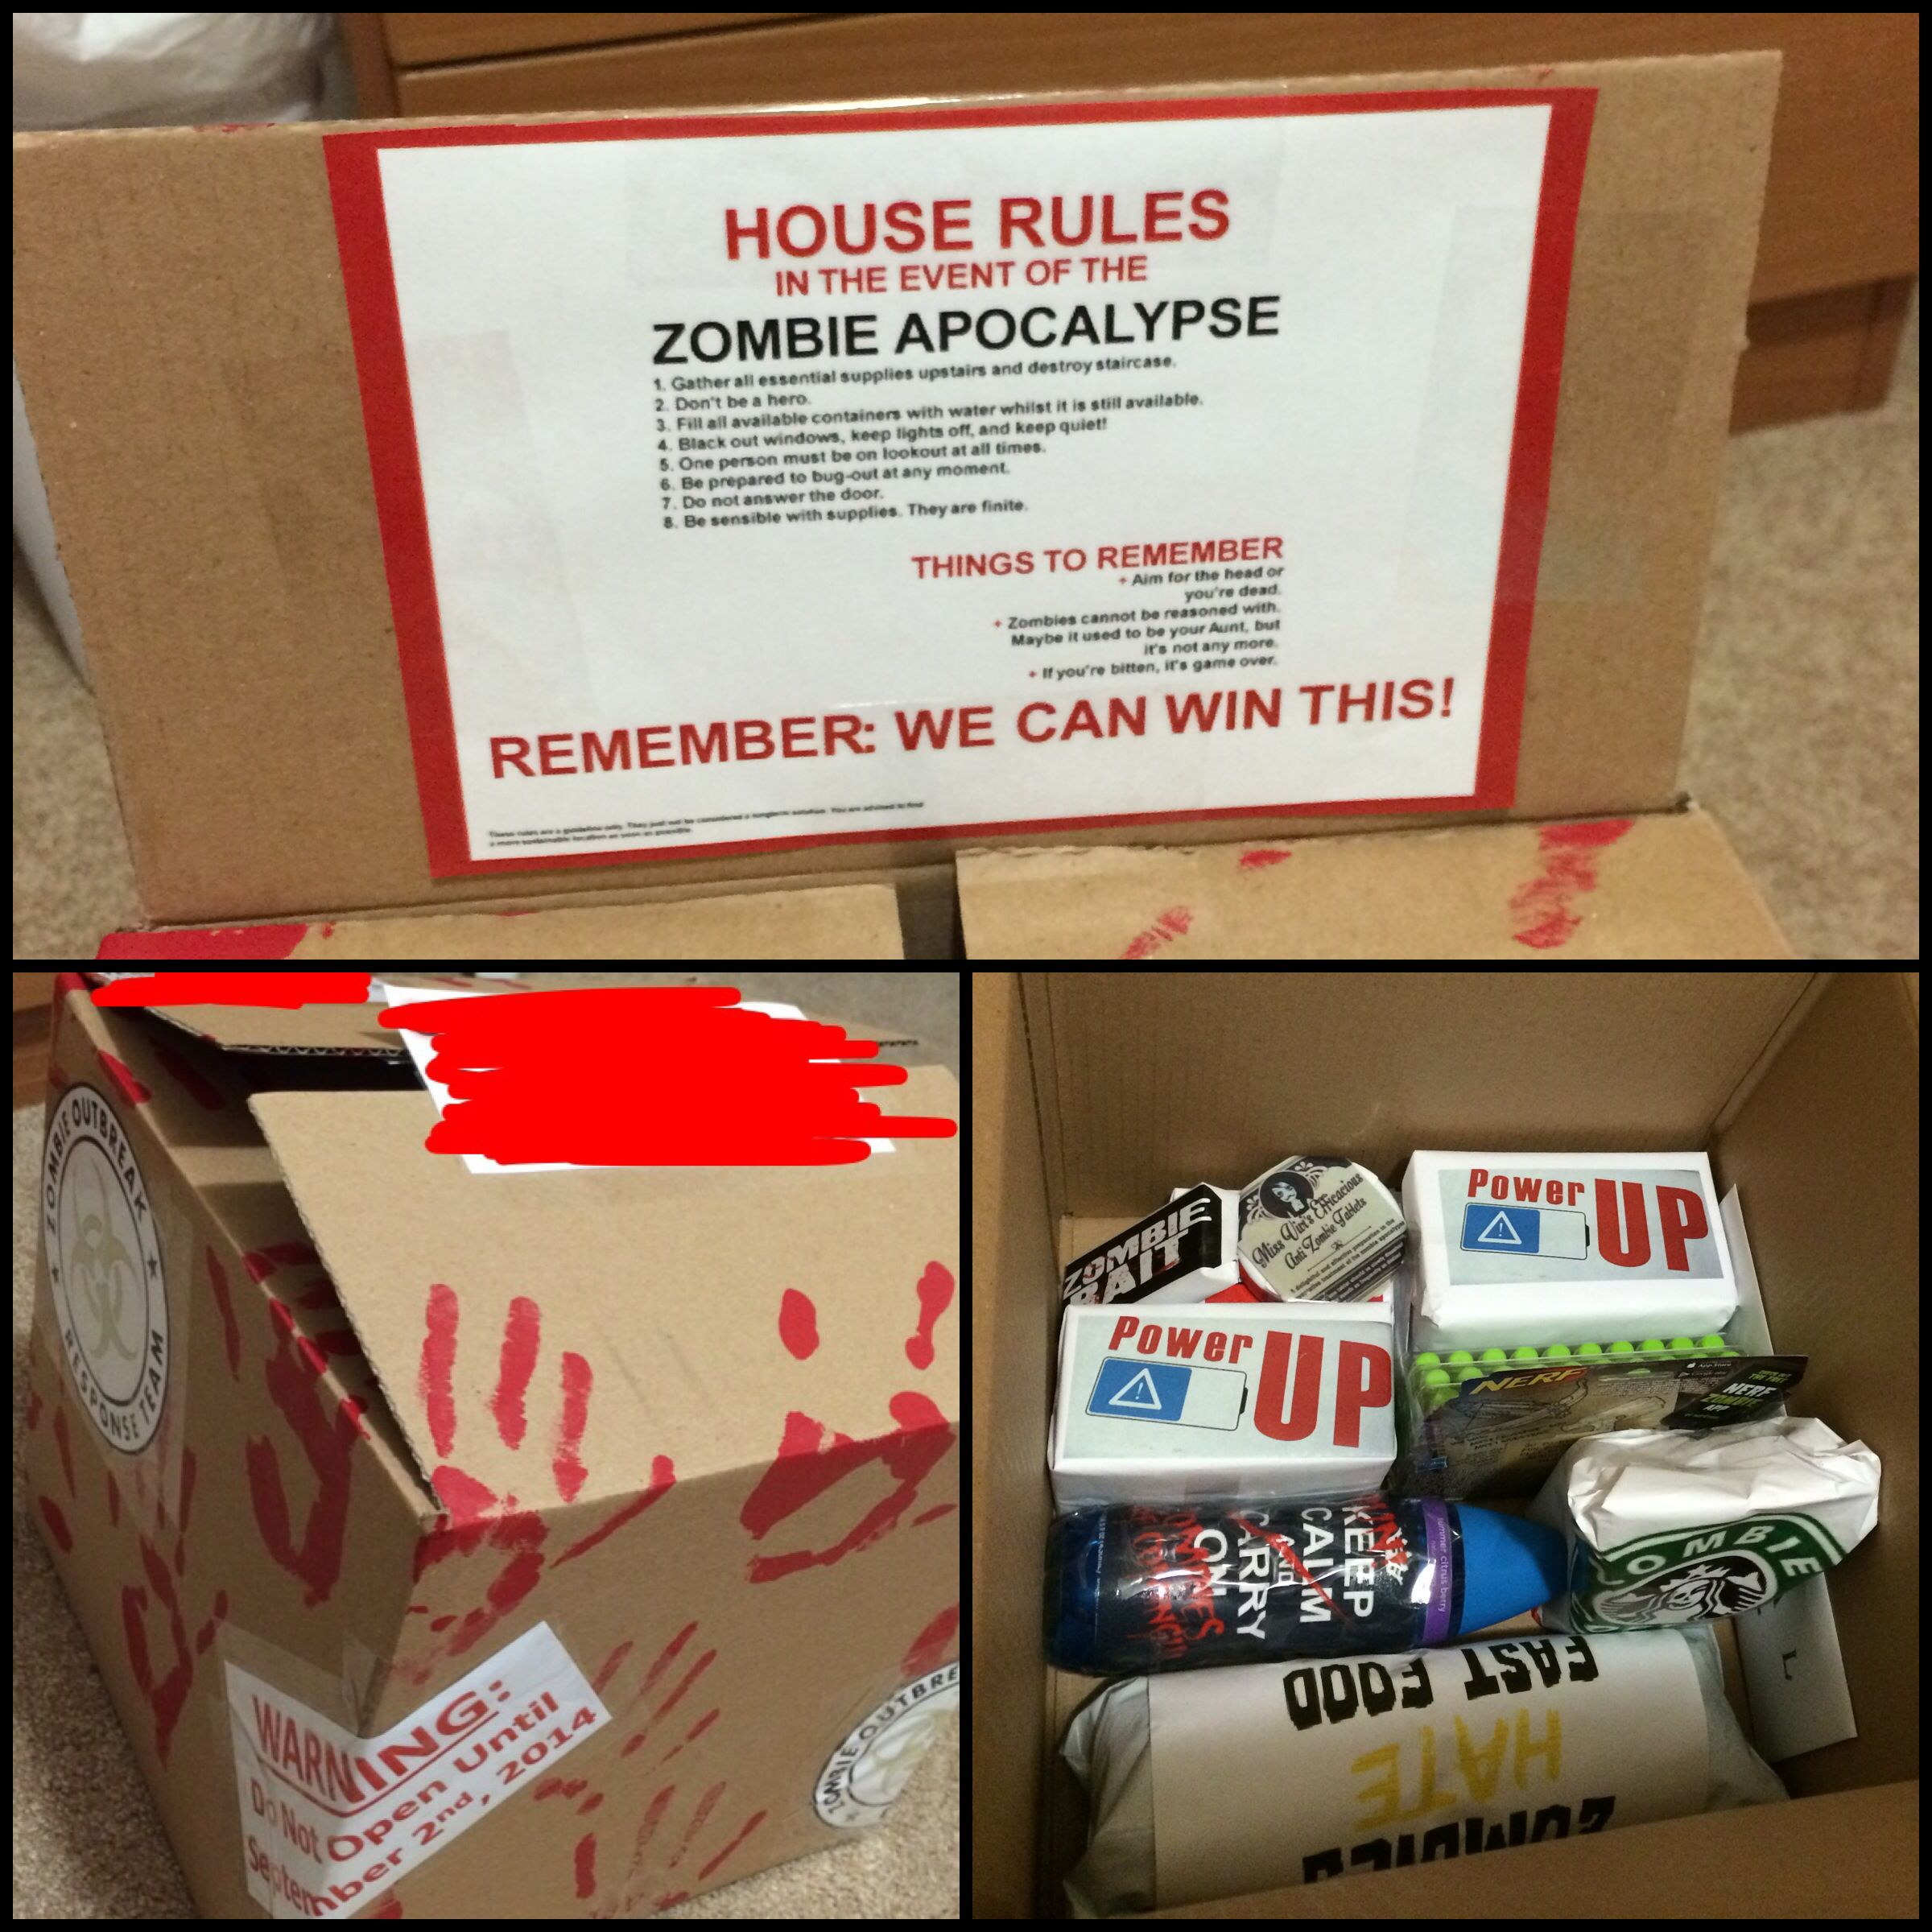 Care Package: Zombie Survival Kit INCLUDES: -Survival Guide For Zombie Outbreak -Permit To Kill